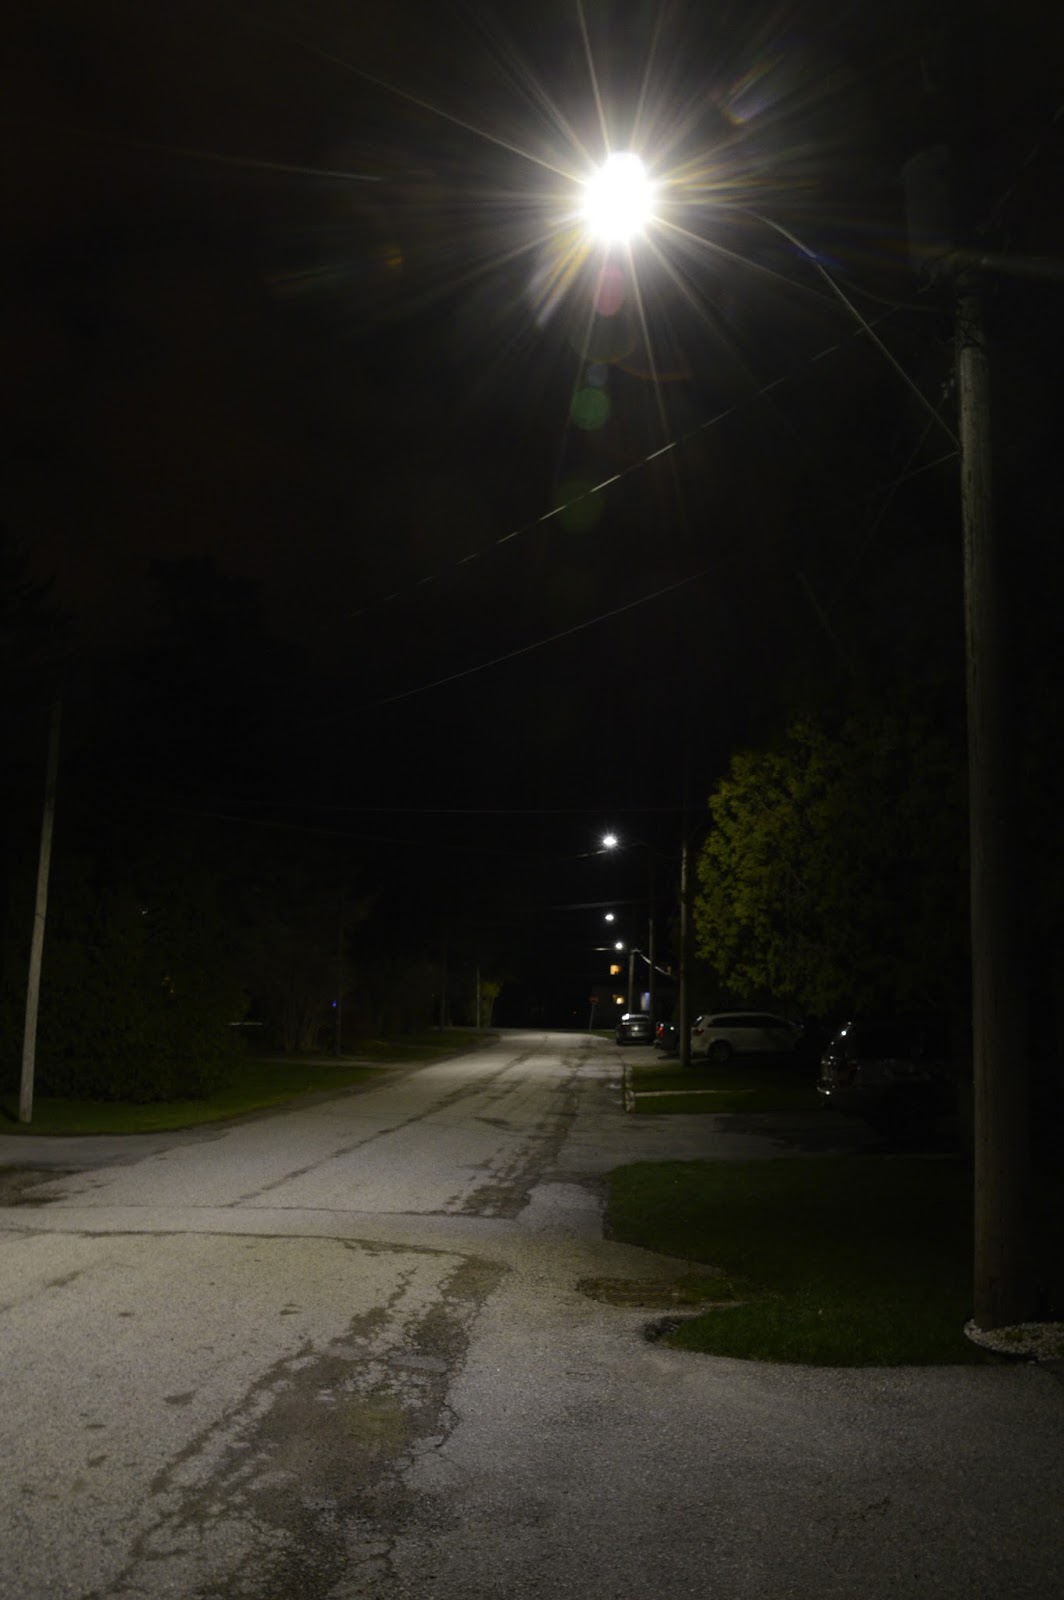 research risk lights to led streetlights light lead new of links street cancer increased lighting